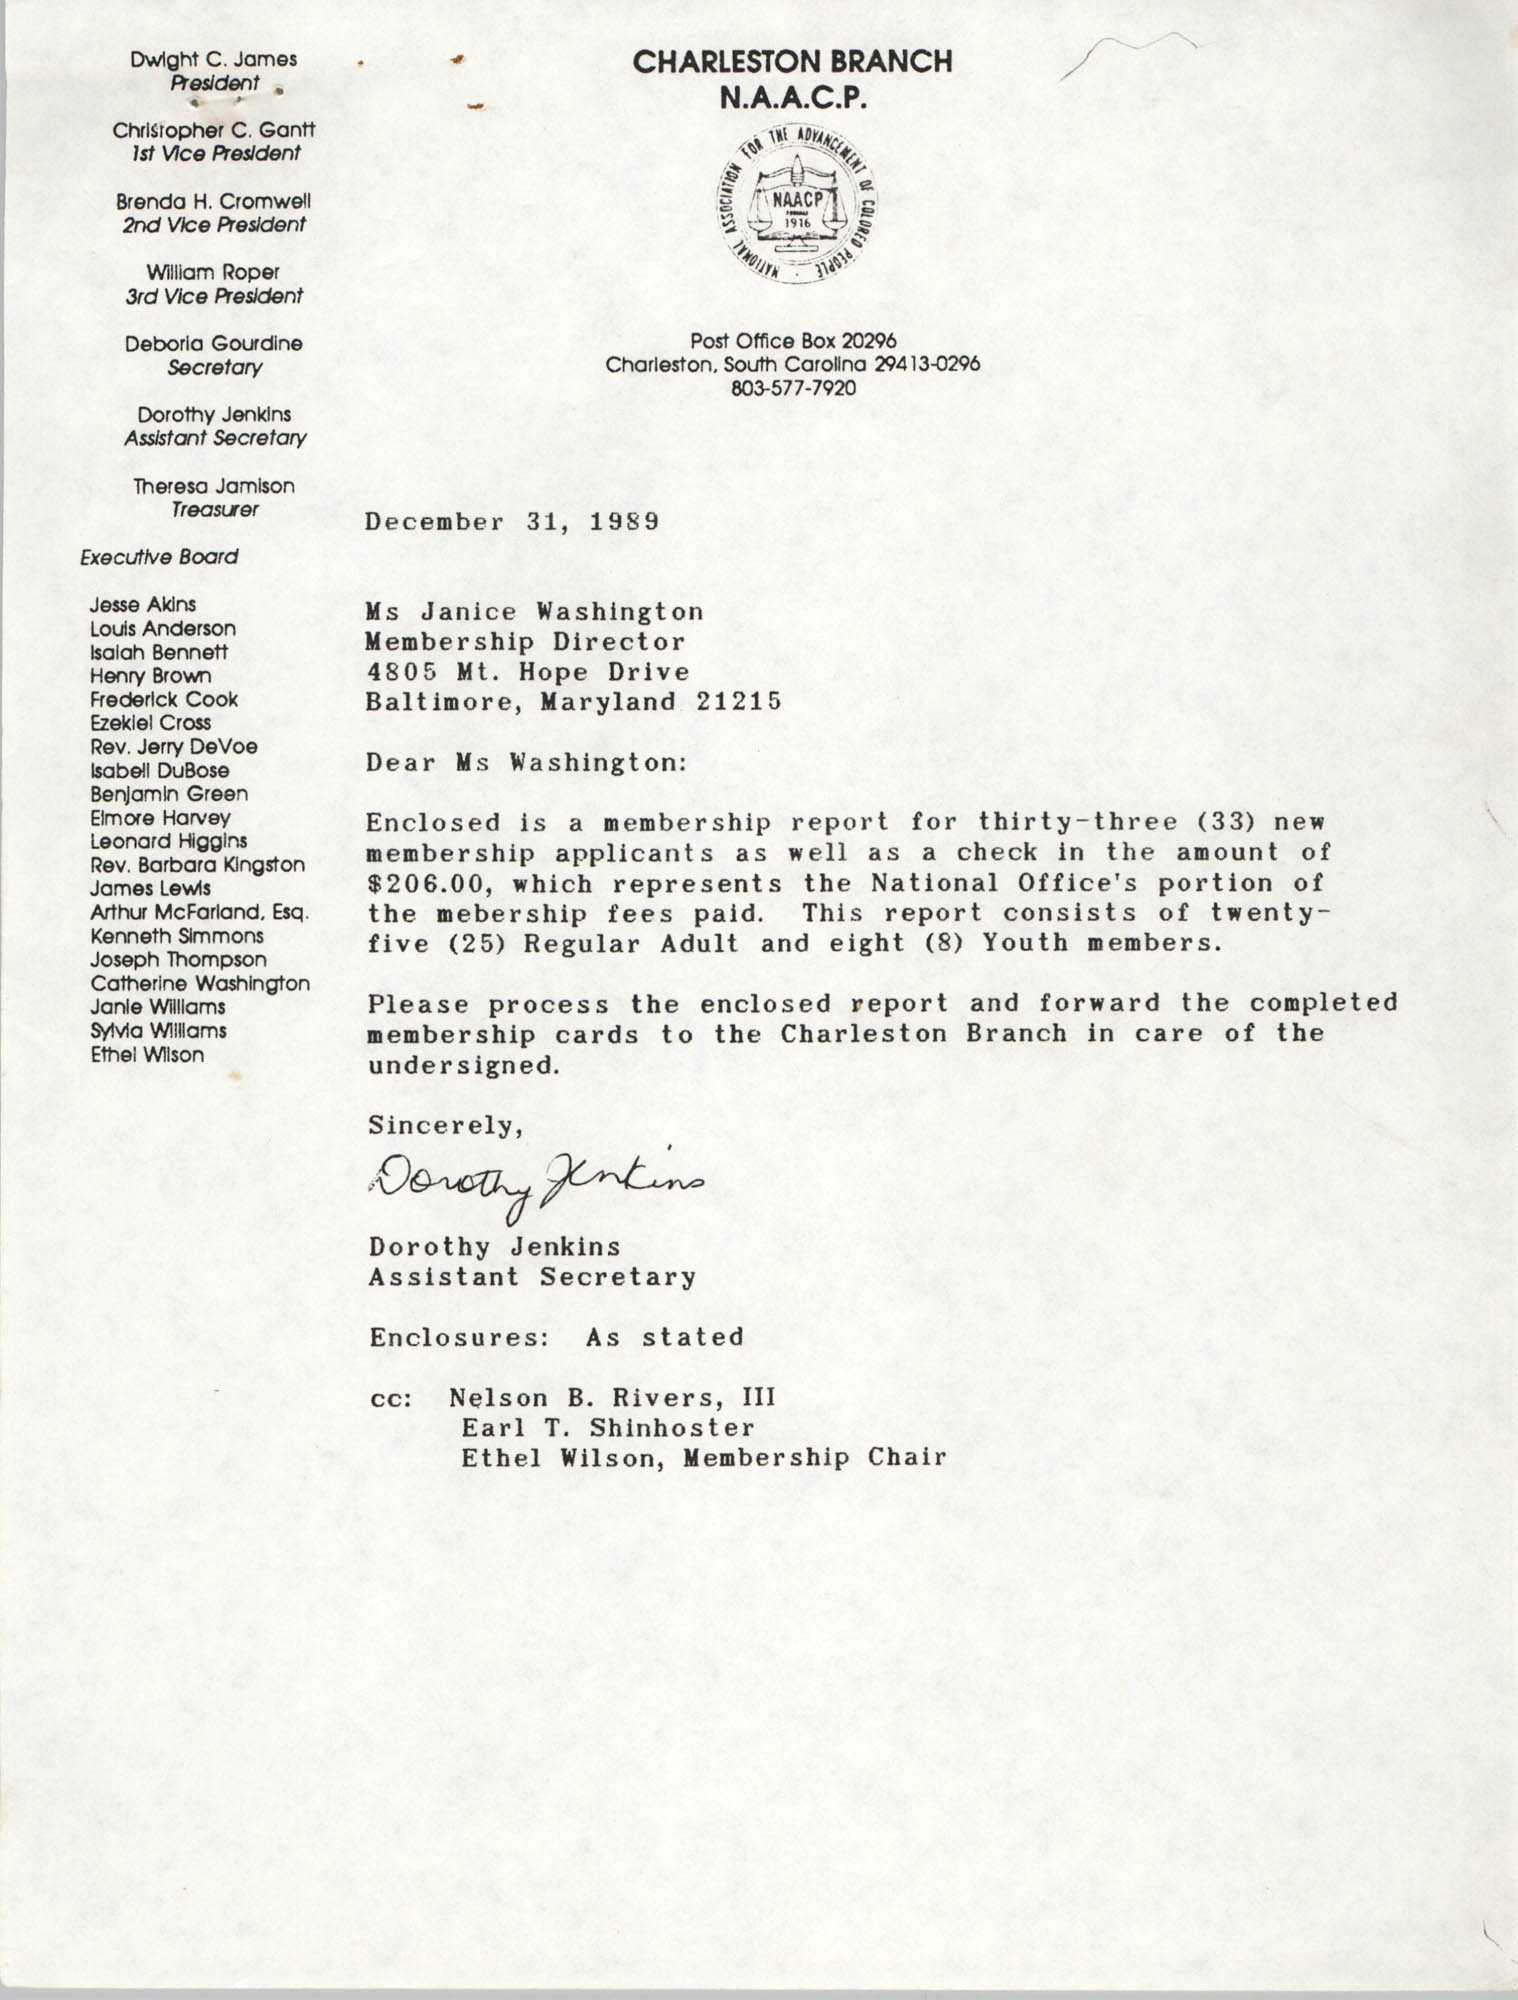 Letter from Dorothy Jenkins to Janice Washington, NAACP, December 30, 1989